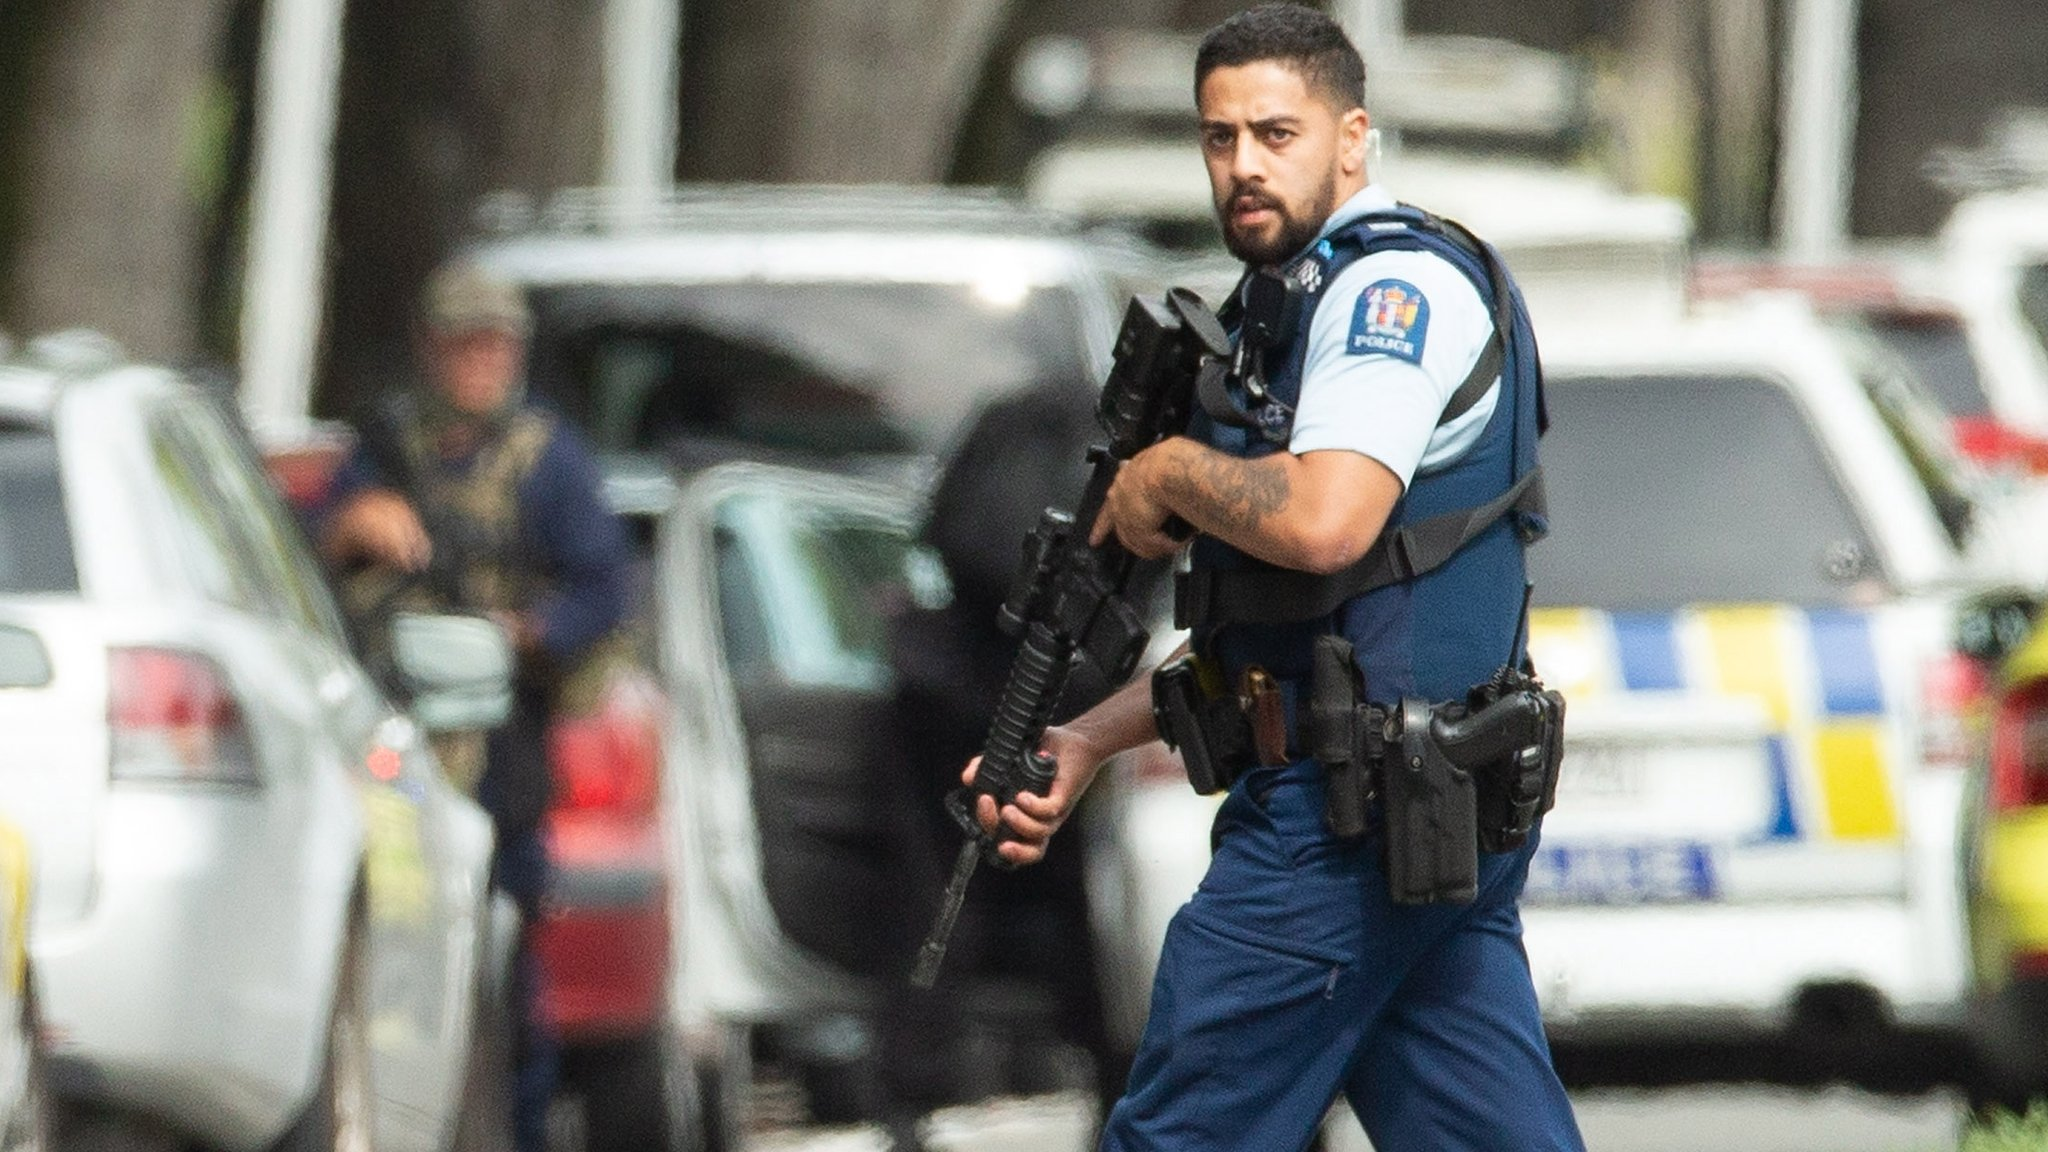 Masjid Christchurch Update: New Zealand Shooting UPDATES: Gunmen Kill 40 In